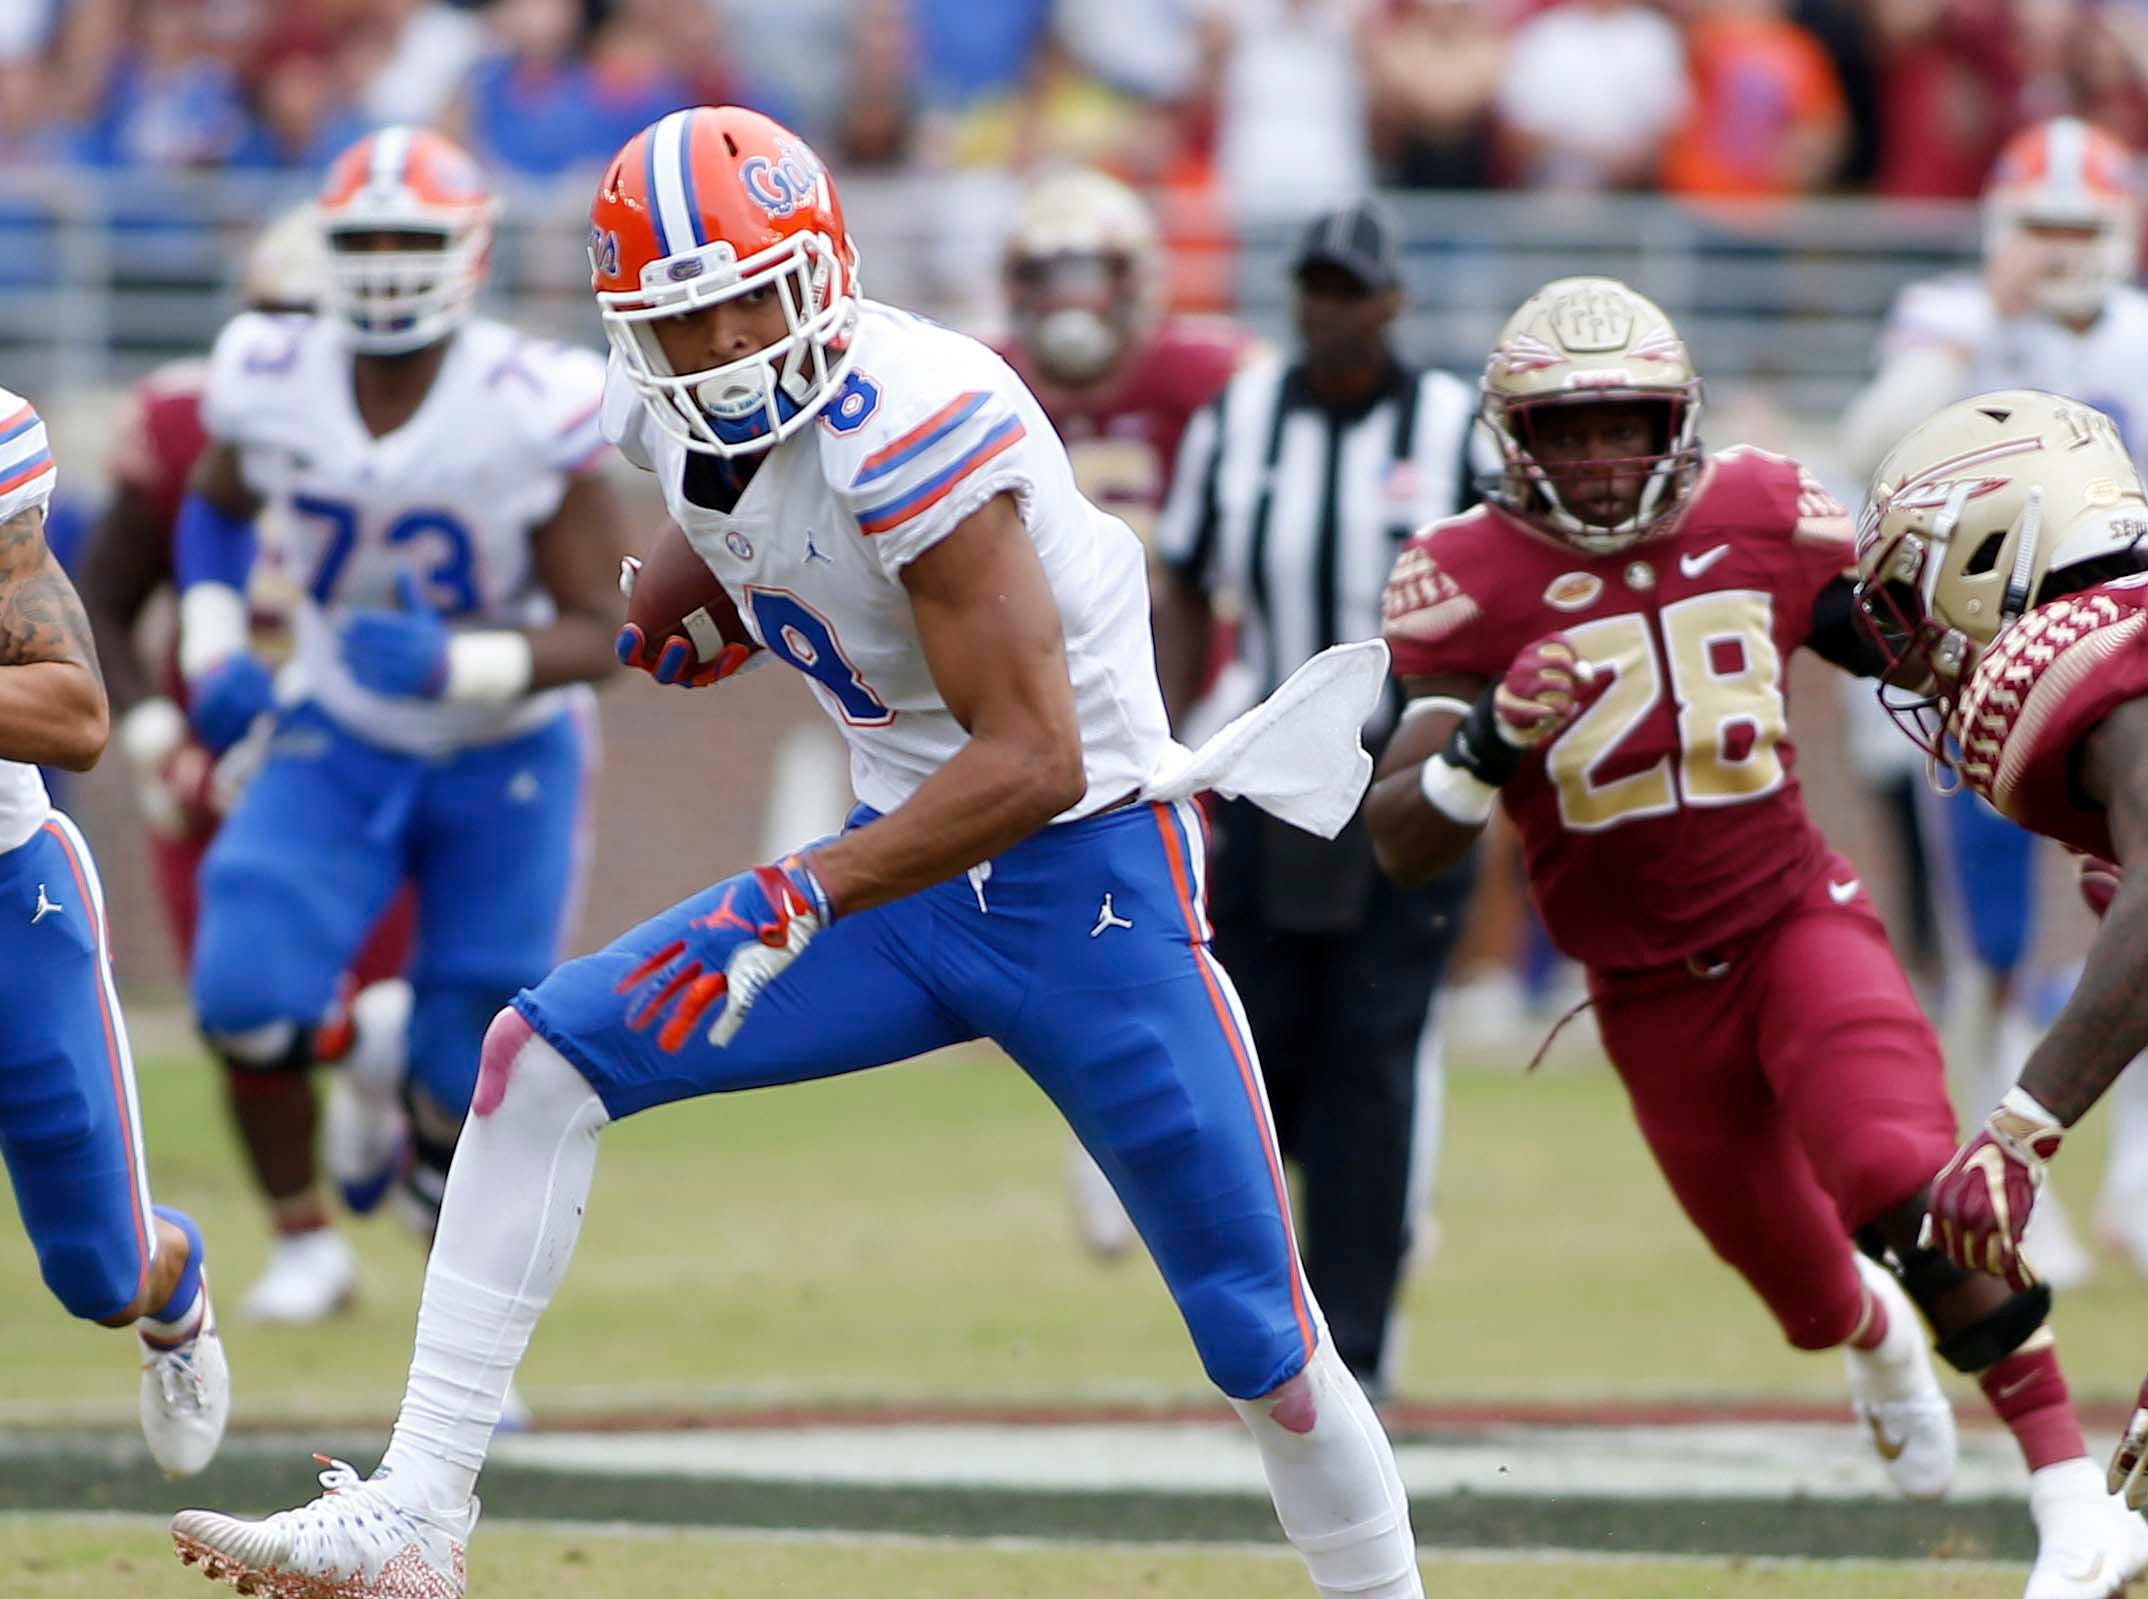 Nov 24, 2018; Tallahassee, FL, USA; Florida Gators wide receiver Trevon Grimes (8) runs after making a catch abasing the Florida State Seminoles during the first half of action at Doak Campbell Stadium. Mandatory Credit: Glenn Beil-USA TODAY Sports